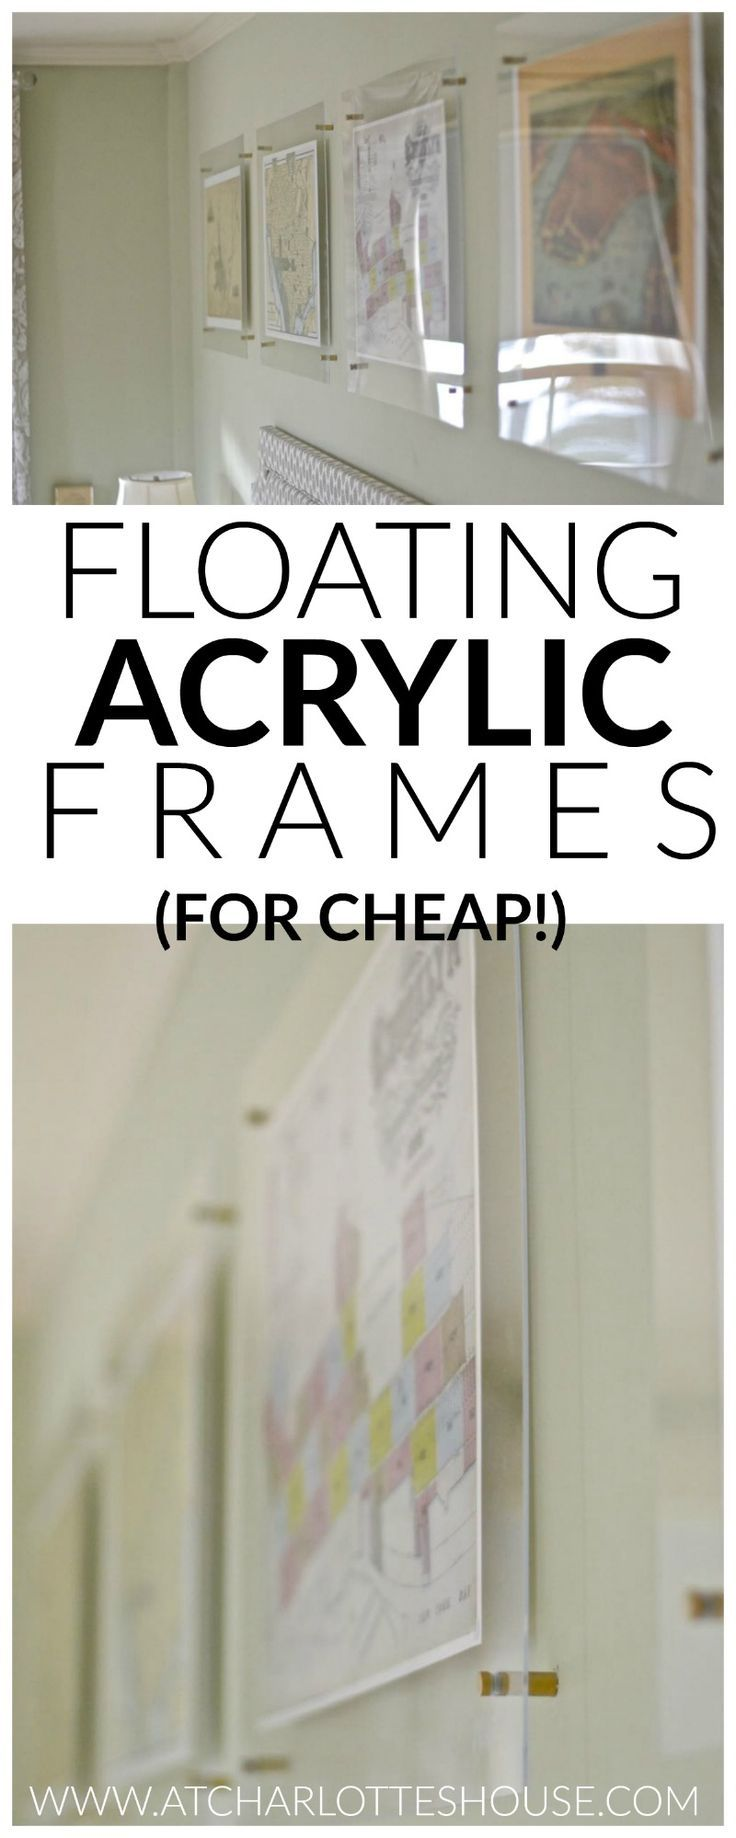 49d5aedc4d98 These are the perfect way to get the look of chic floating acrylic frames  without breaking the budget!